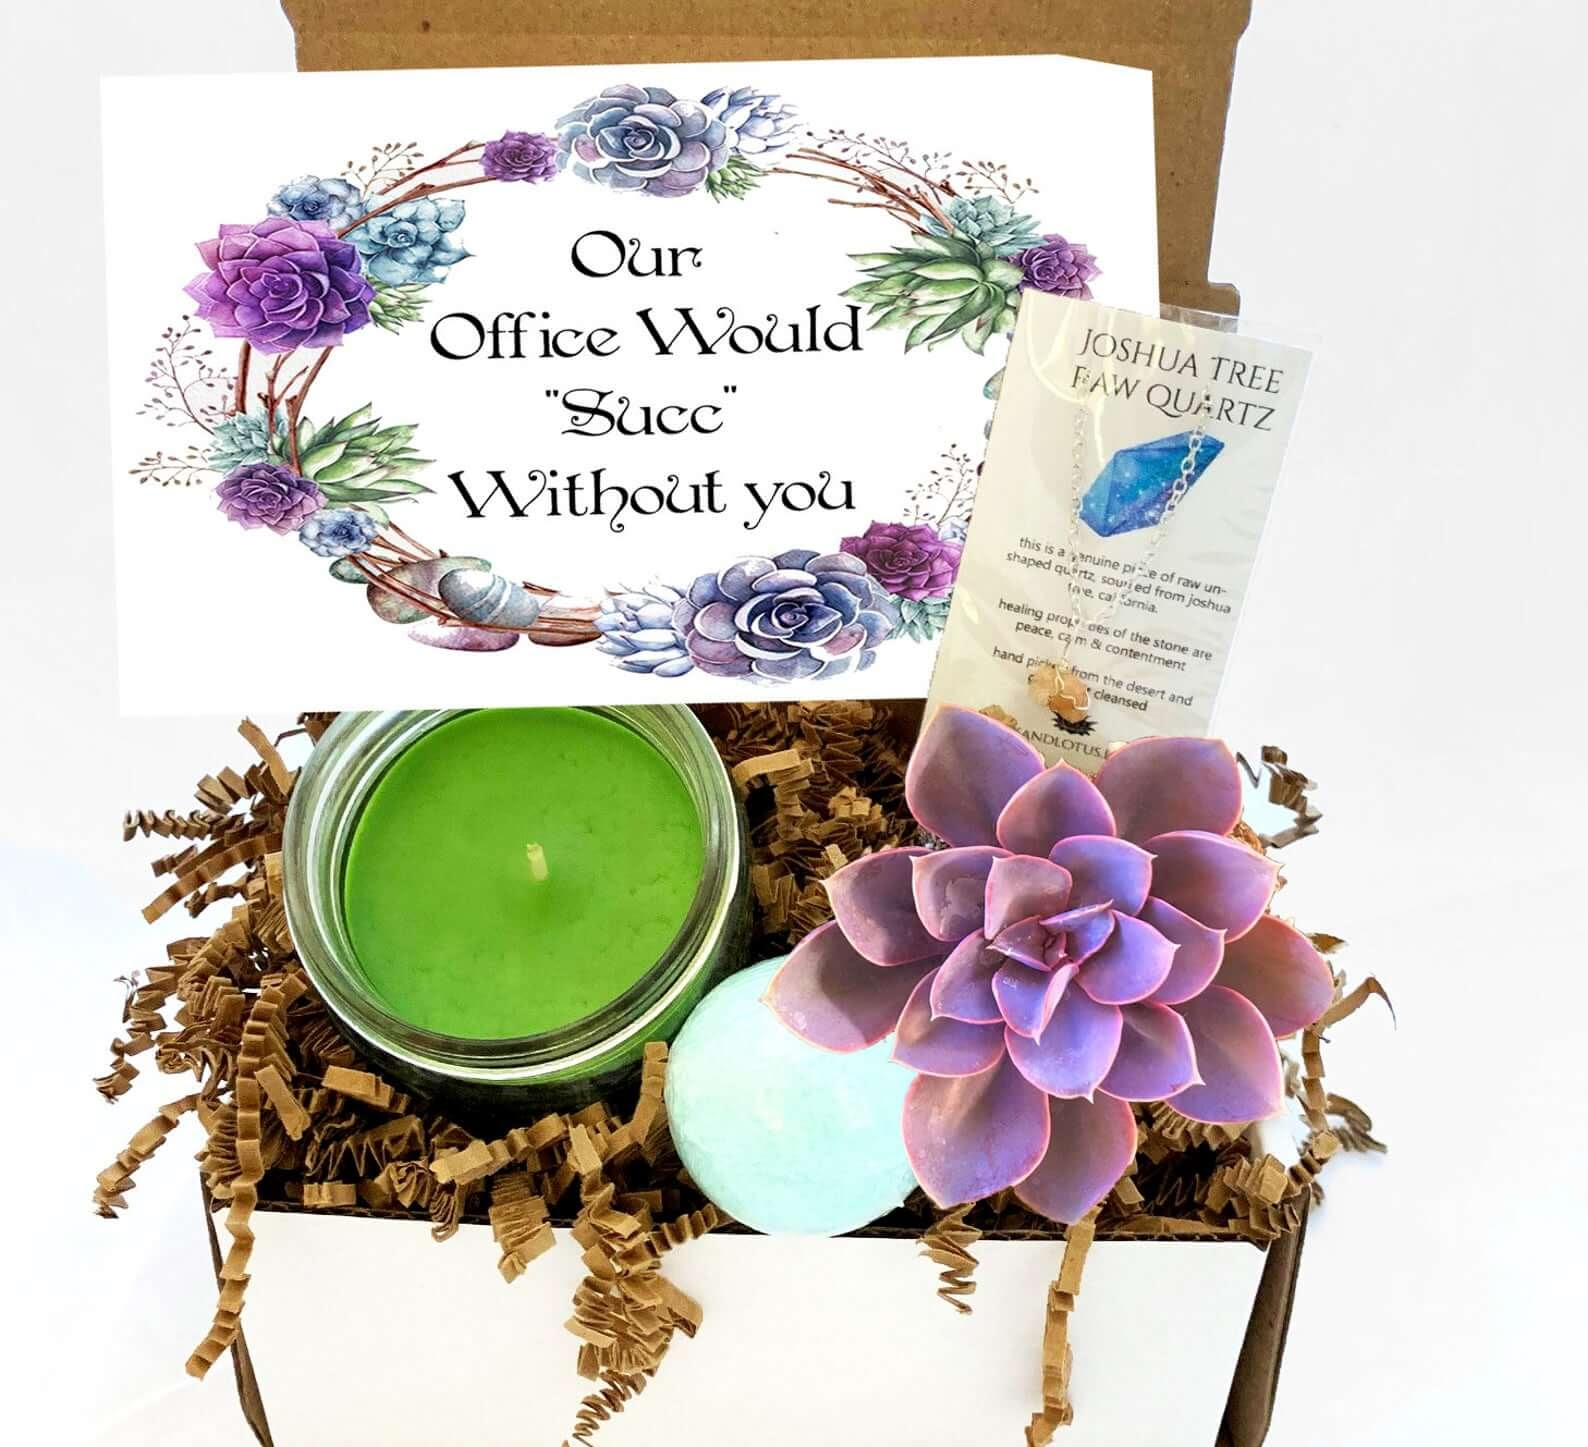 The Our Office Would Succ Without You gift box.